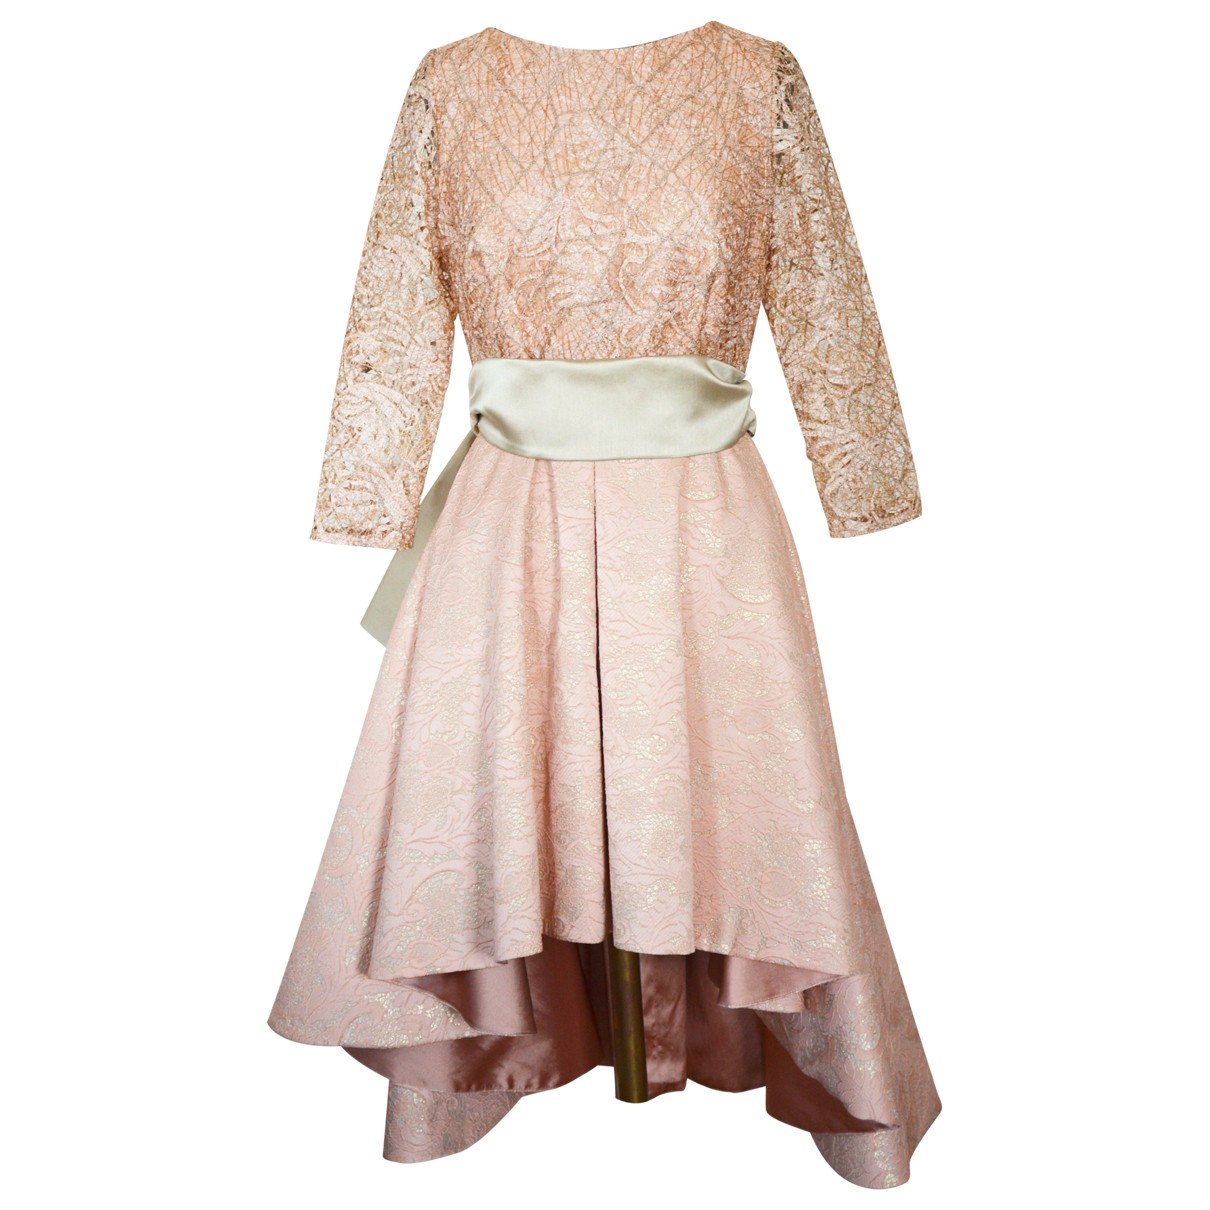 Matilde Cano \N Kleid in  Rosa Polyester